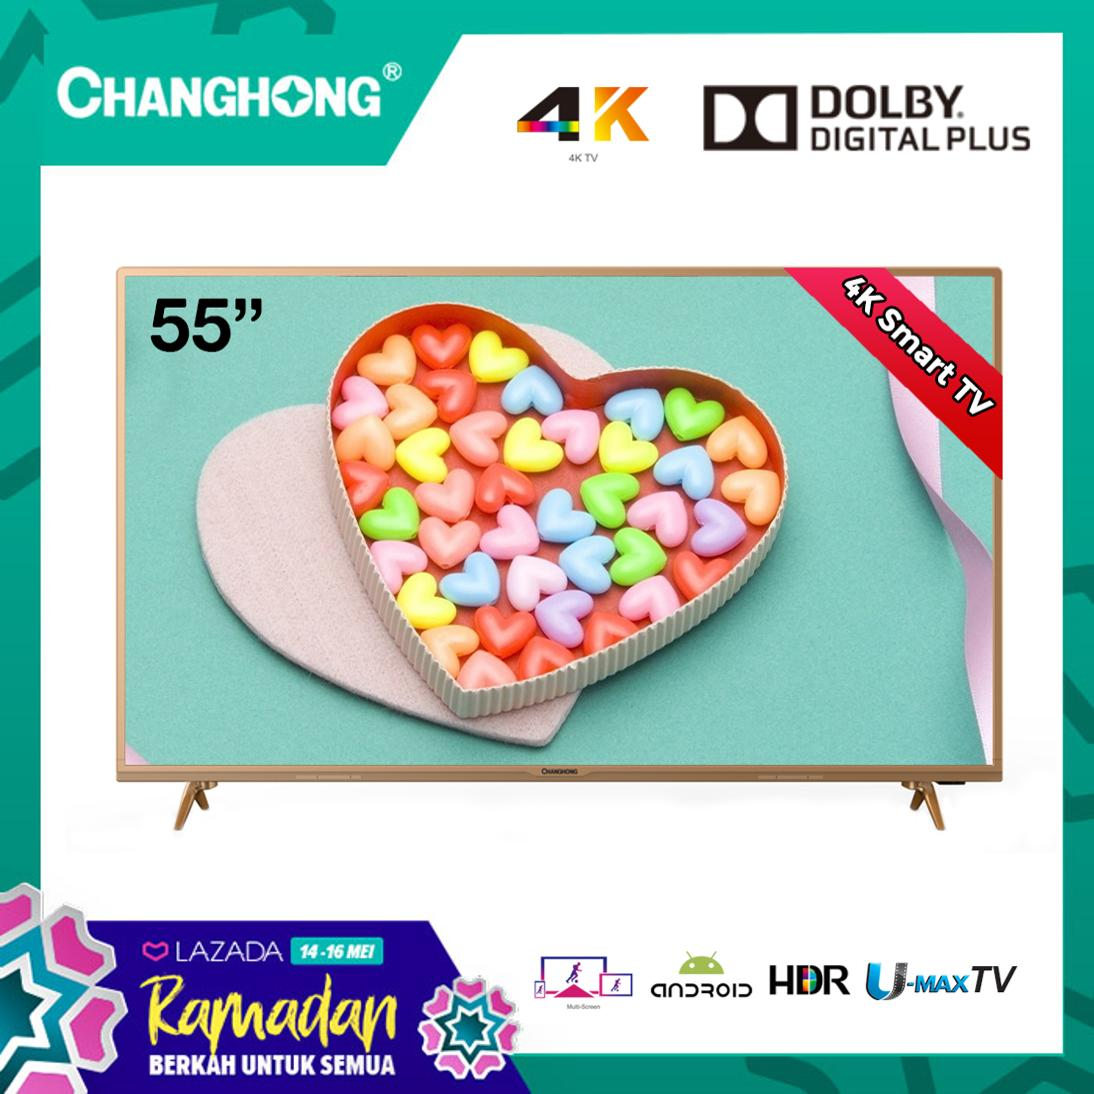 CHANGHONG LED TV 55 Inch - Android Smart TV Digital - 4K Ultra HD TV - USB/HDMI - U55H6 - Garansi Resmi 3 Tahun